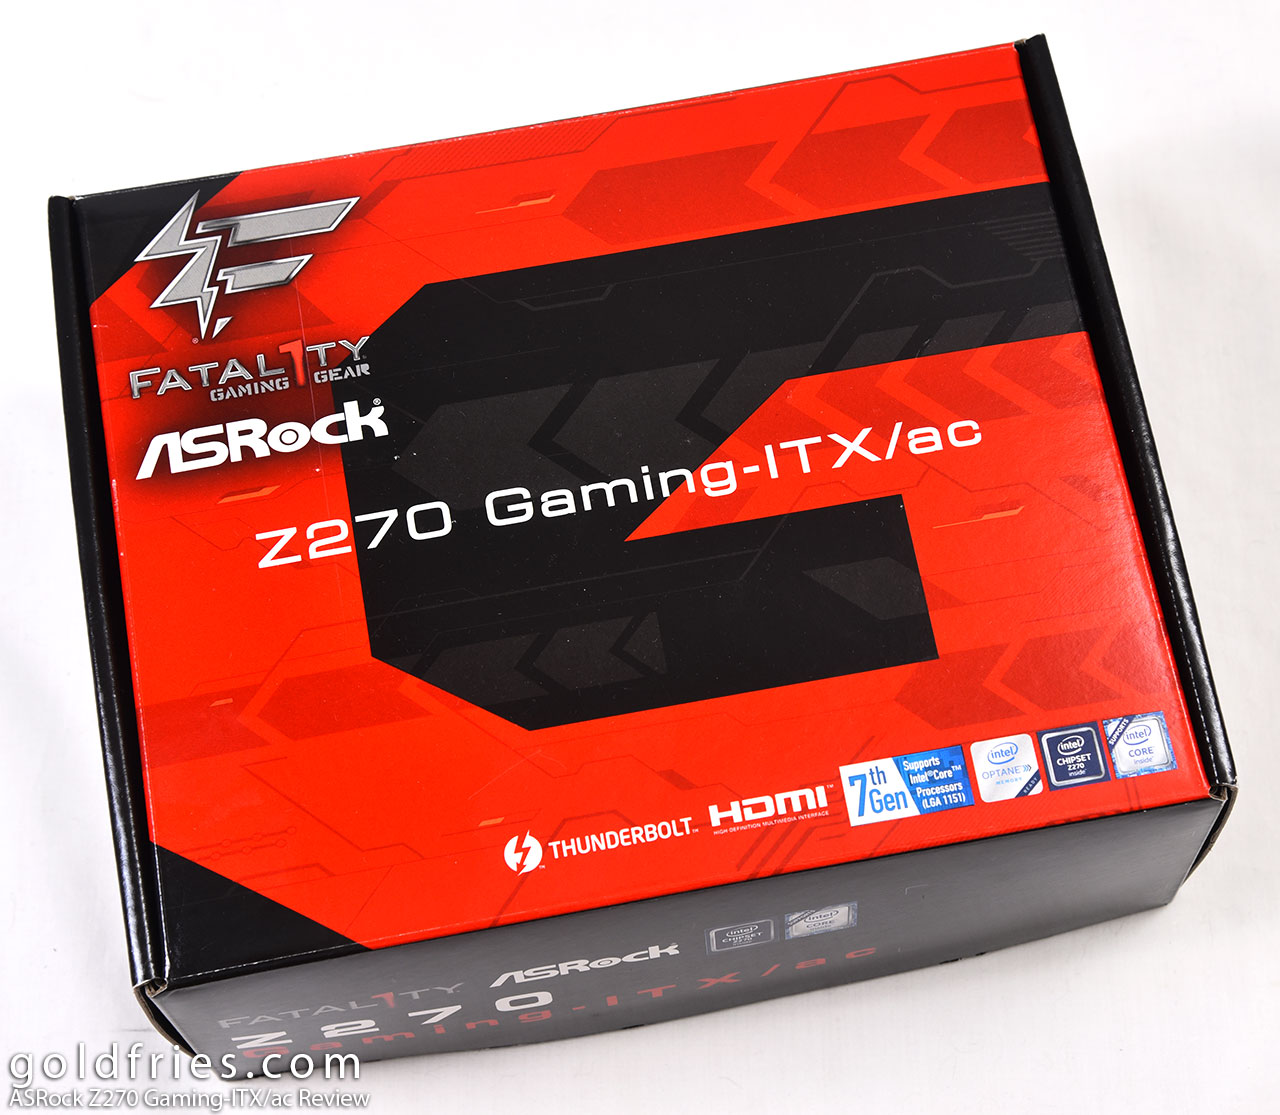 ASRock Z270 Gaming-ITX/ac Review